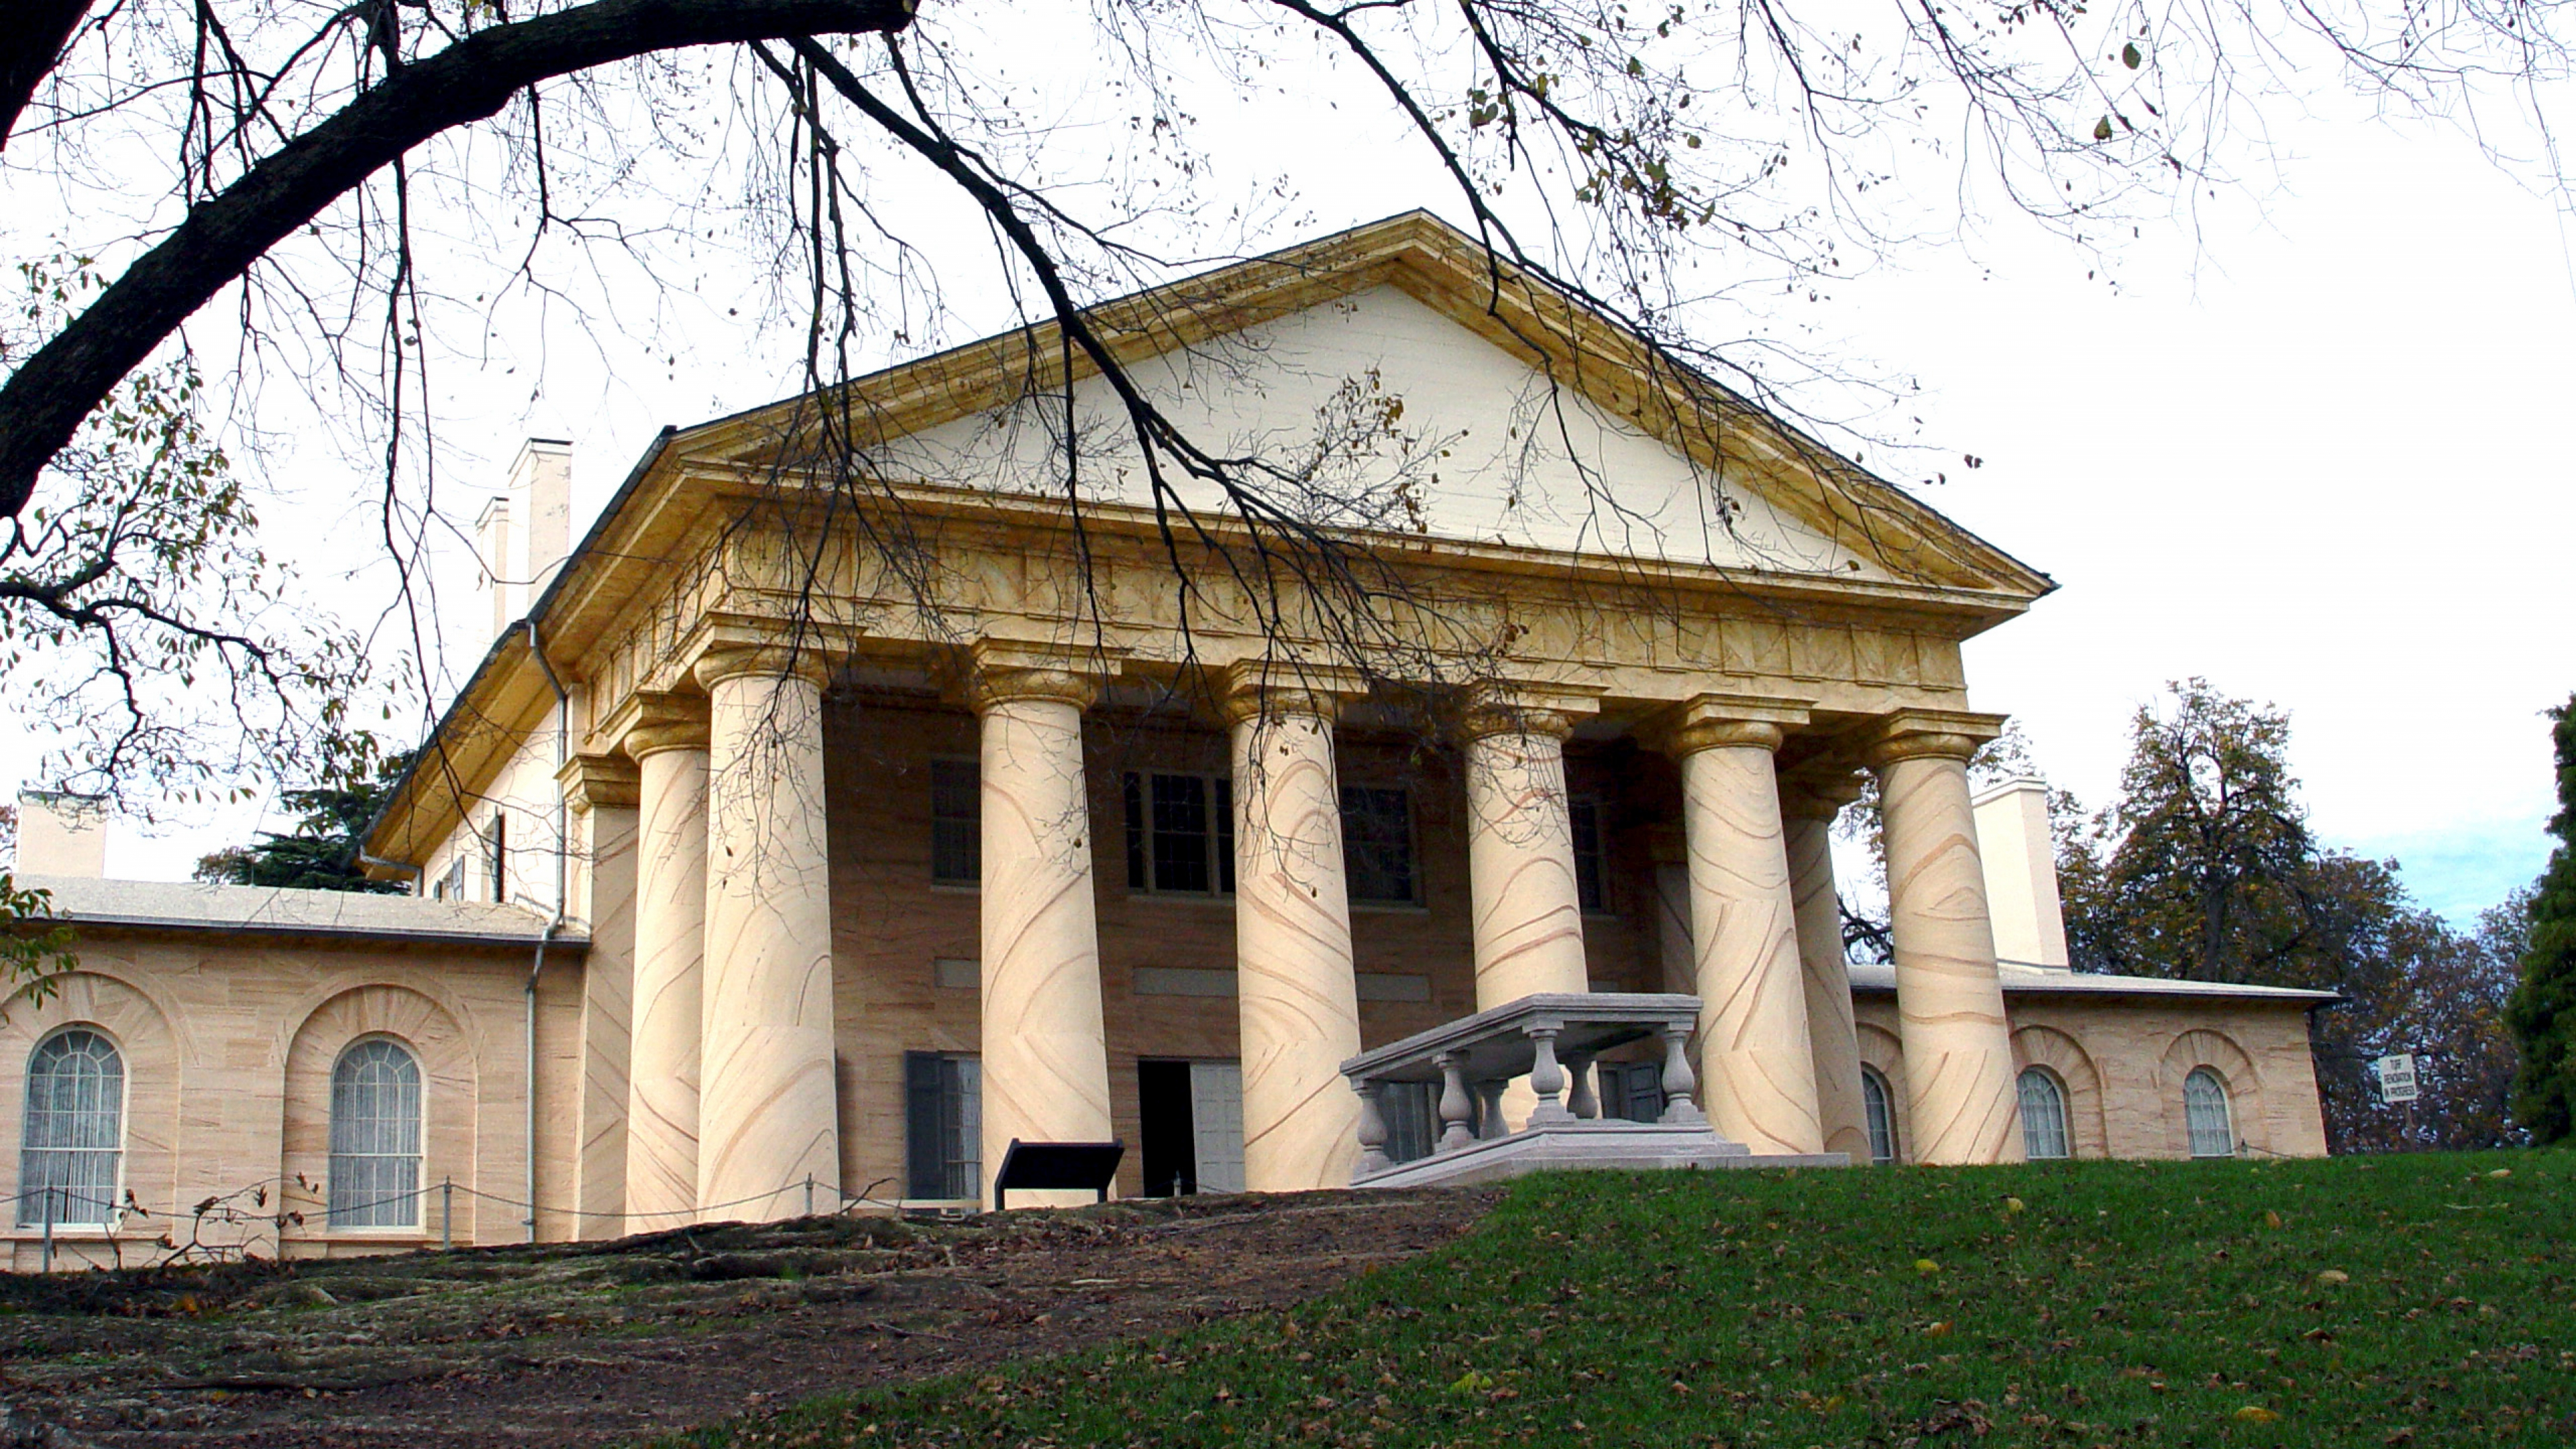 The front of Arlington House viewed through trees